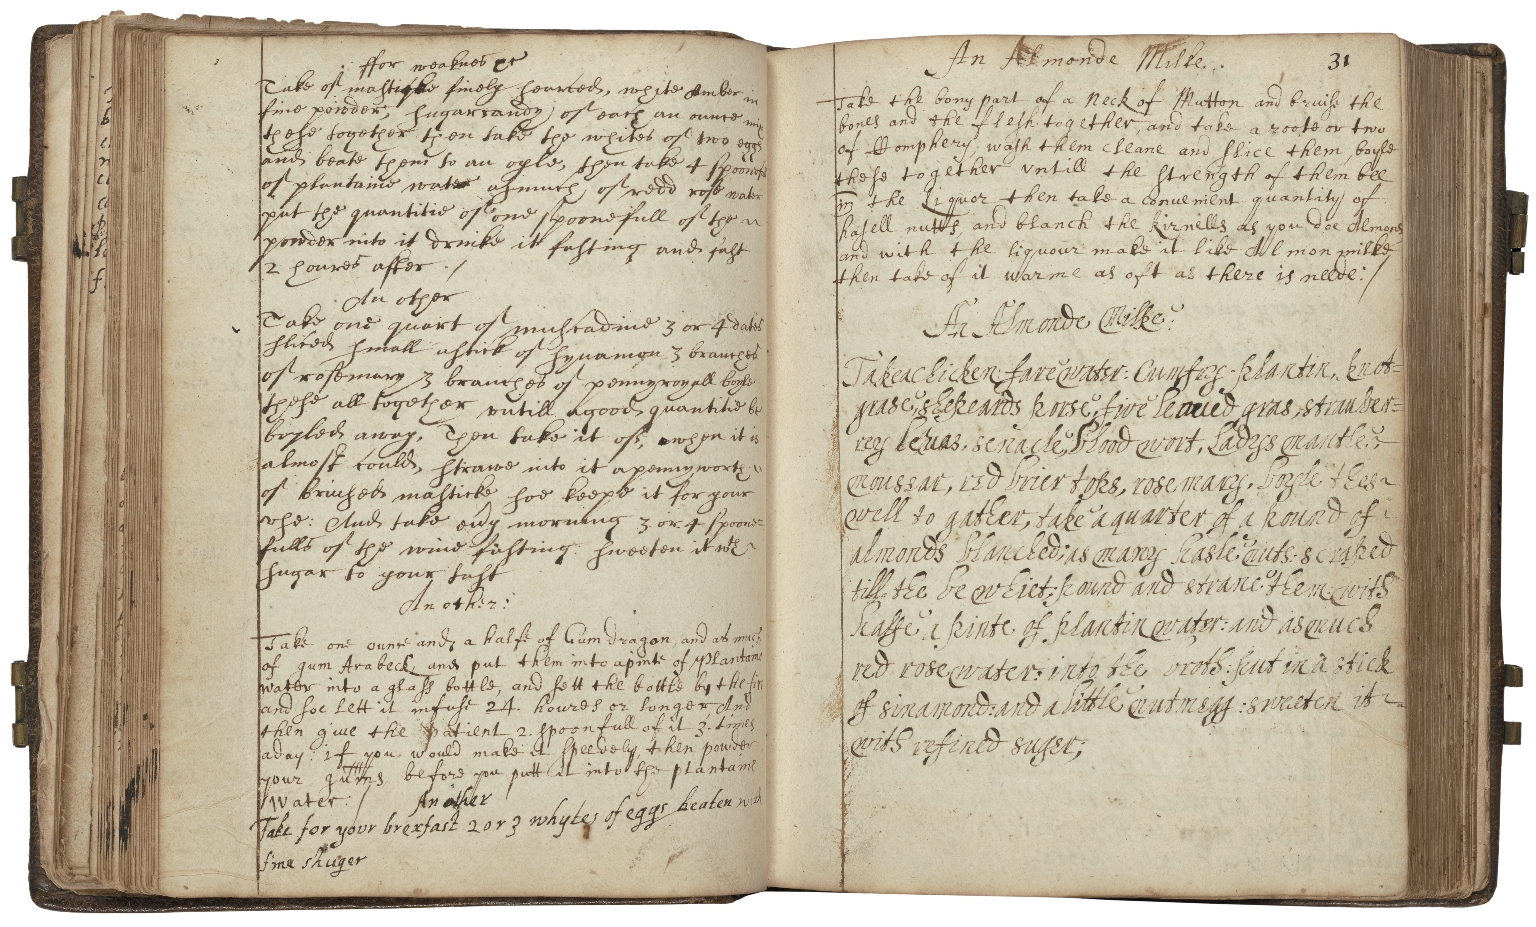 A book of receipts which was given me by several men for several causes, griefs and diseases . . . [manuscript].